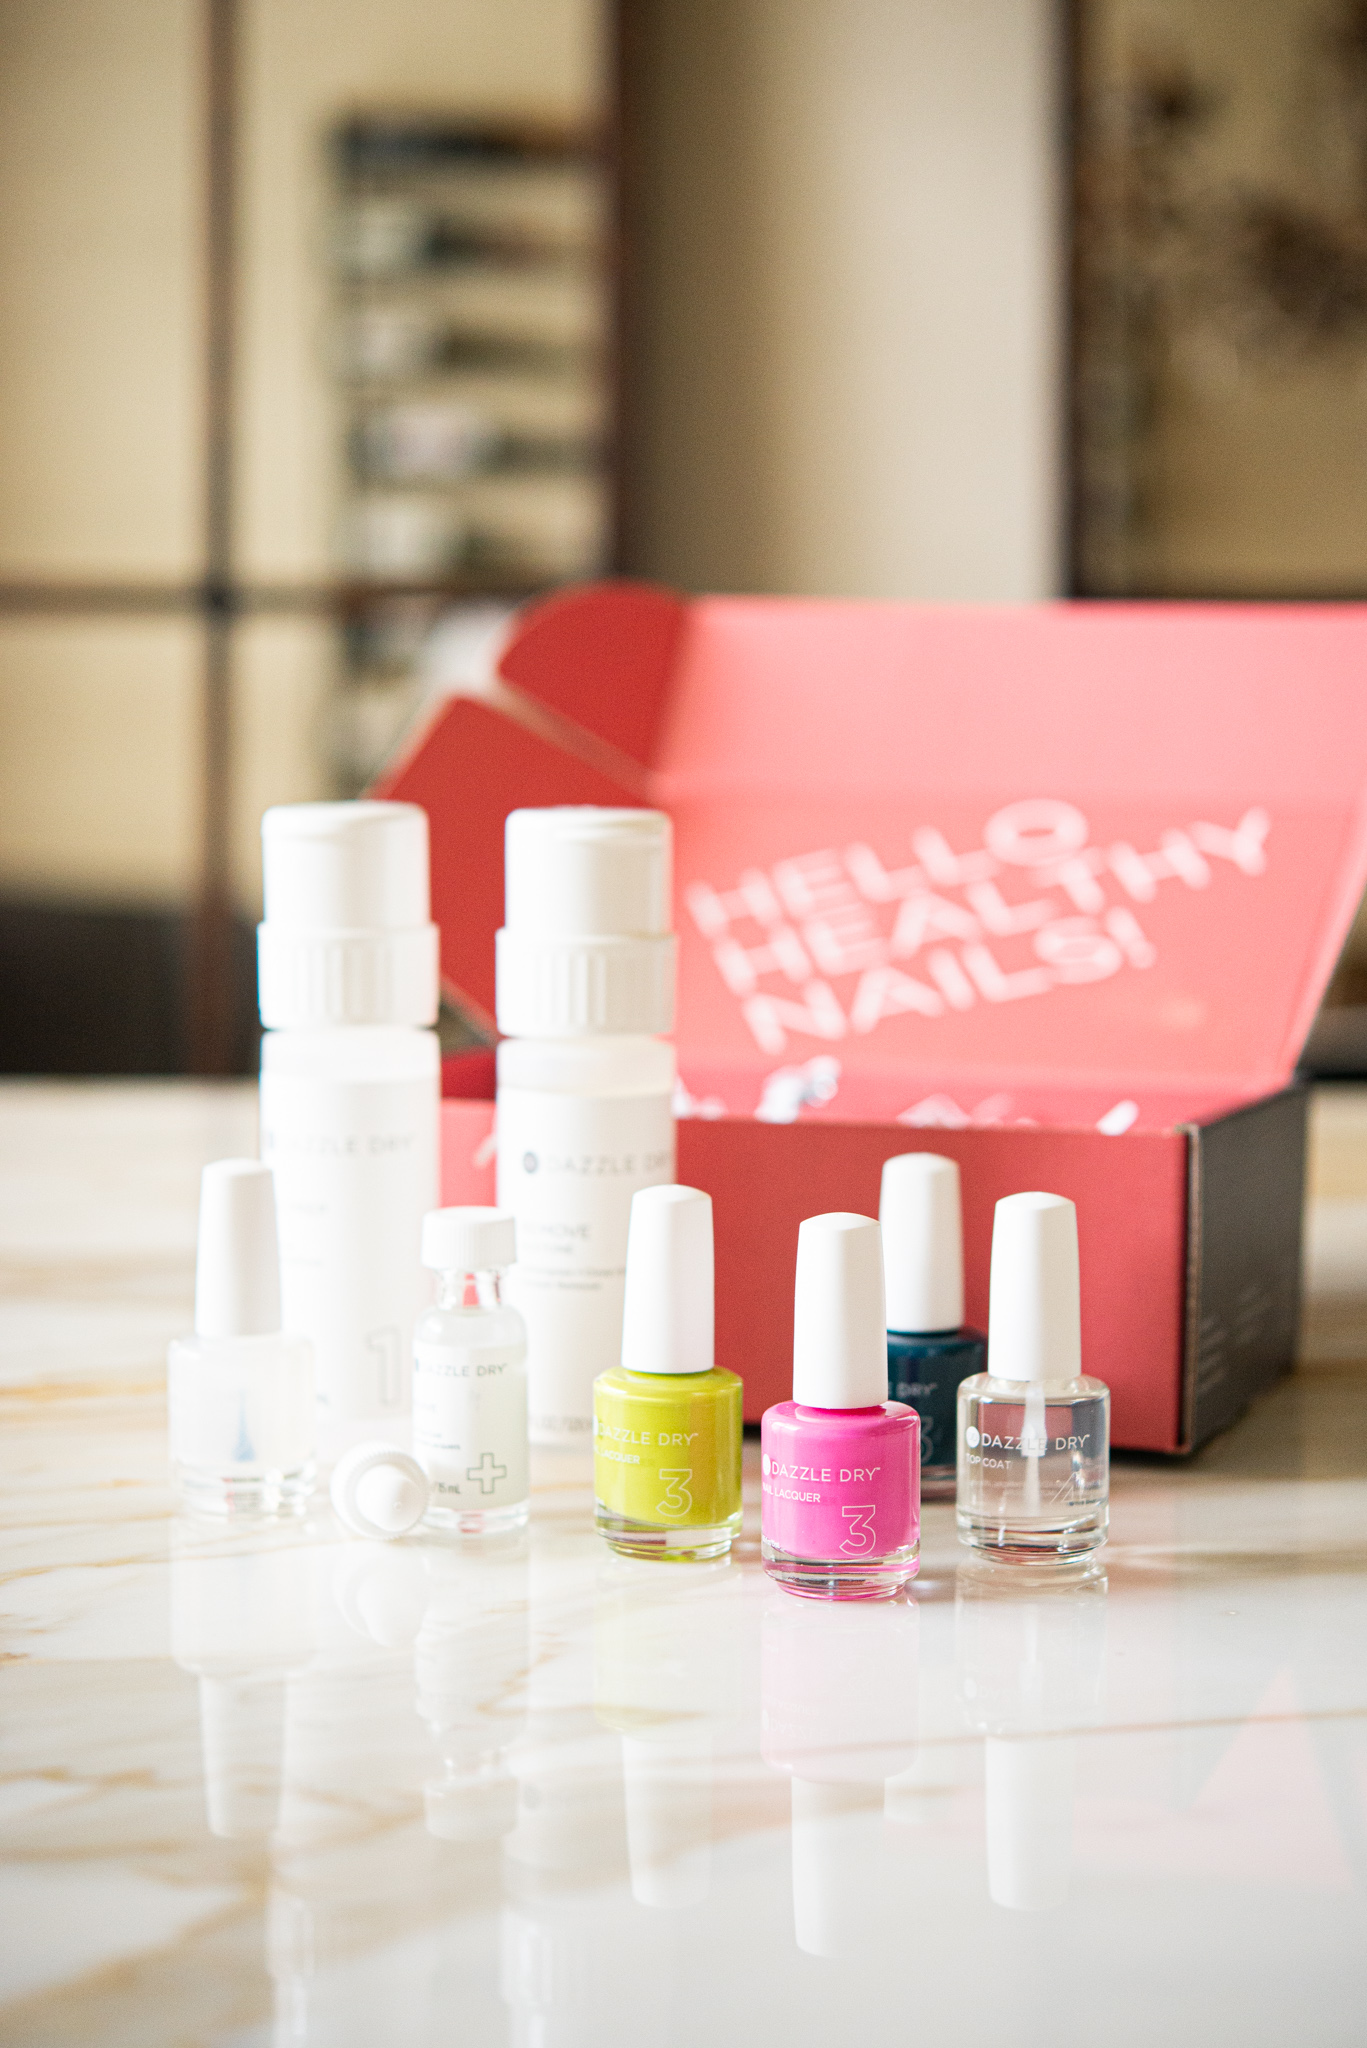 dazzle dry nail kit with three nail polishes, a top coat, and a remover, in front of a bright pink box